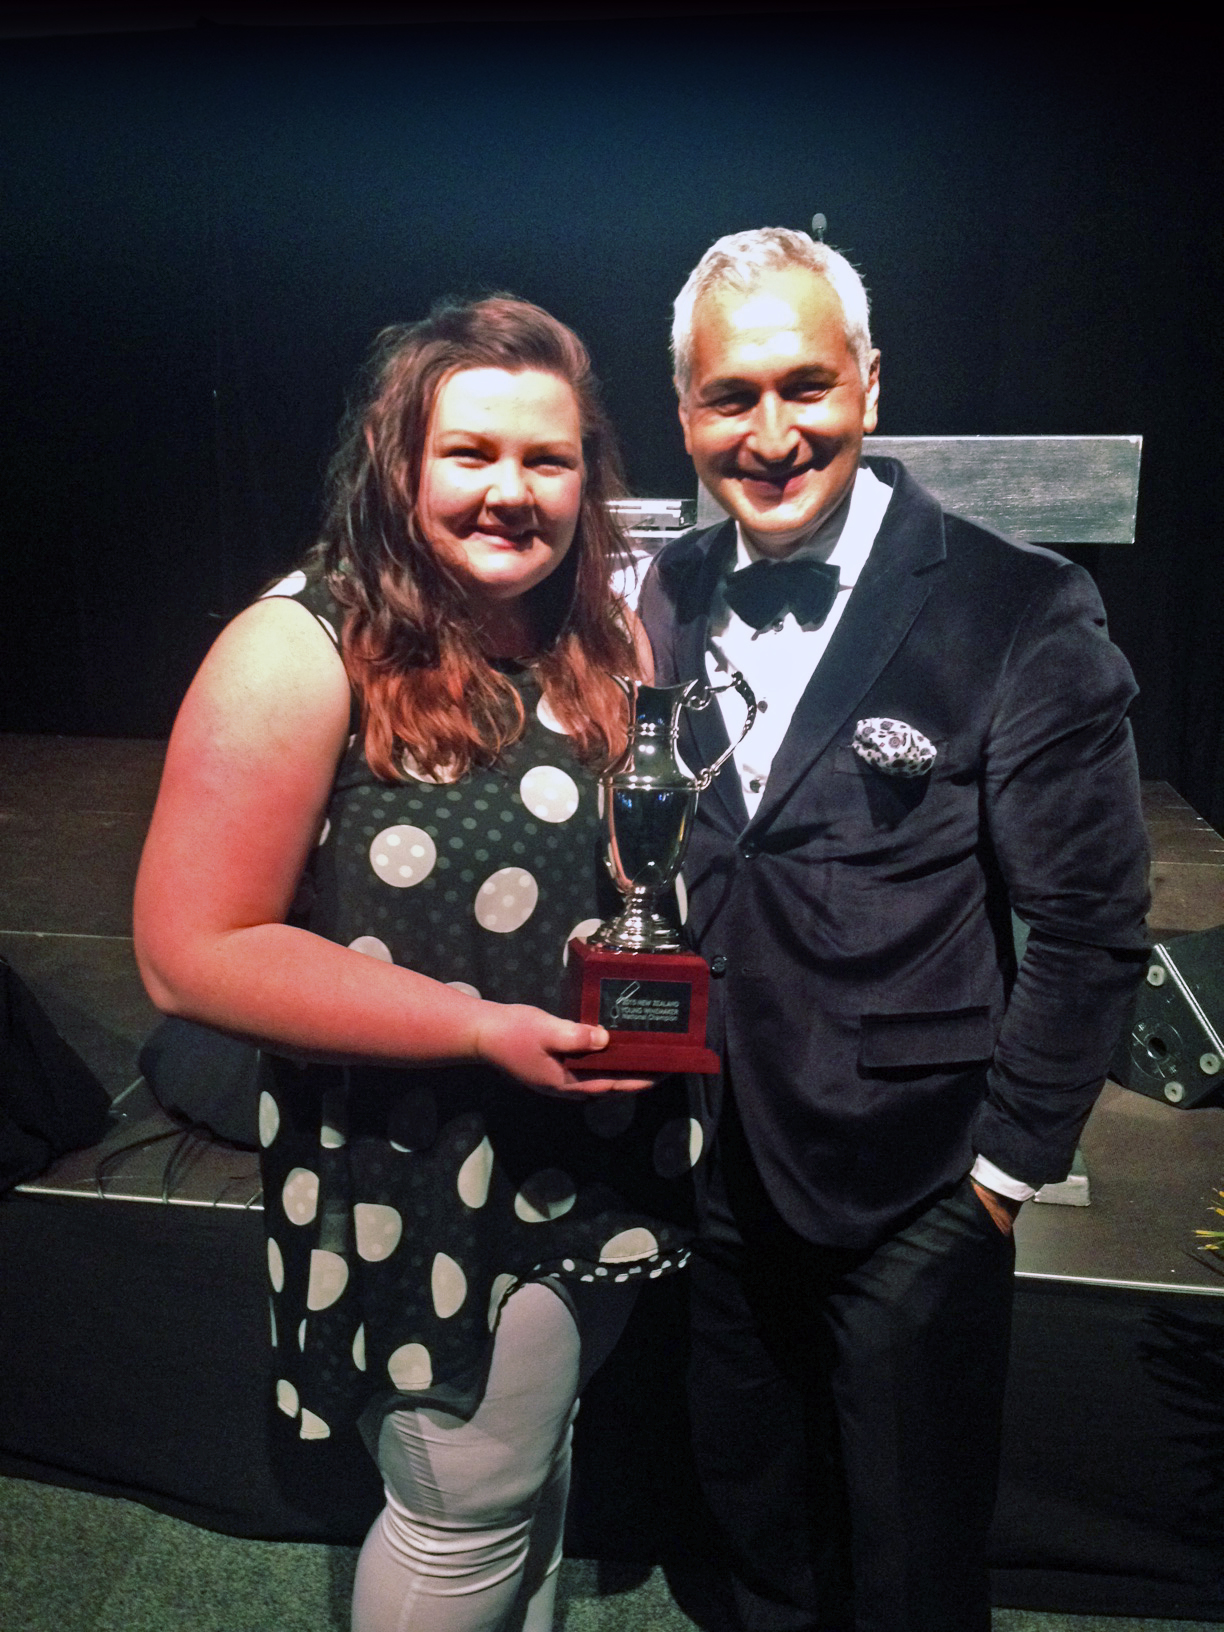 Ash Ridge winemaker Lauren Swift wins New Zealand Young Winemaker of the Year 2015